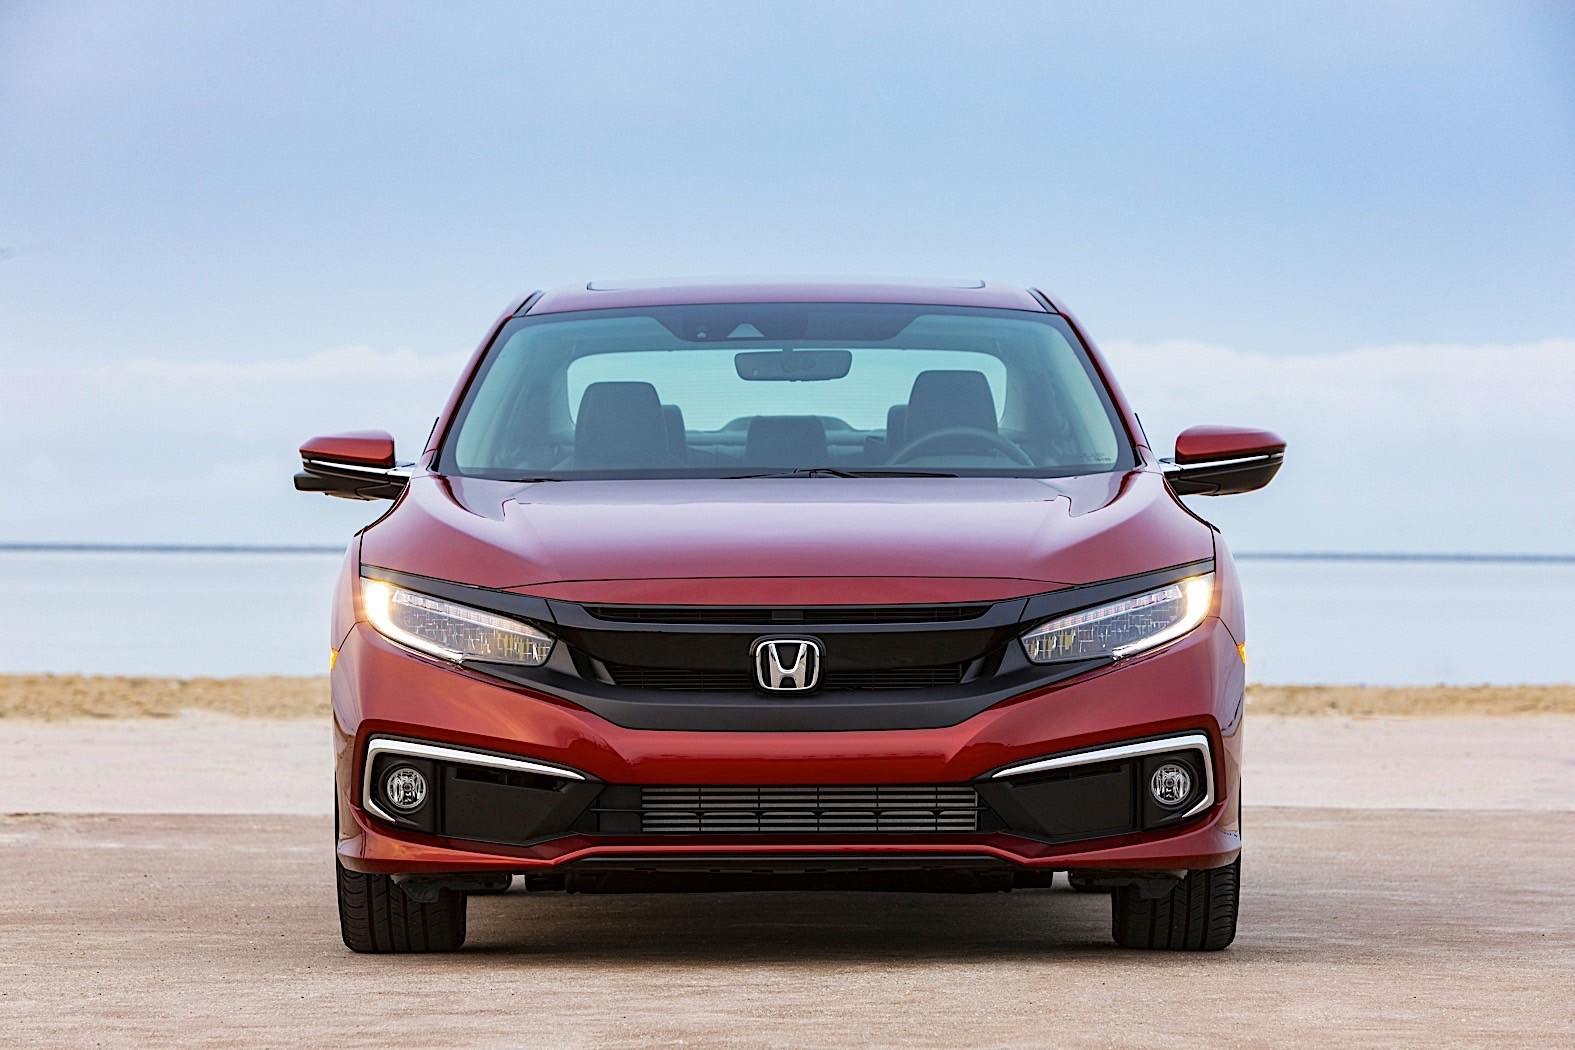 2020 honda civic hits the market with minor price boost